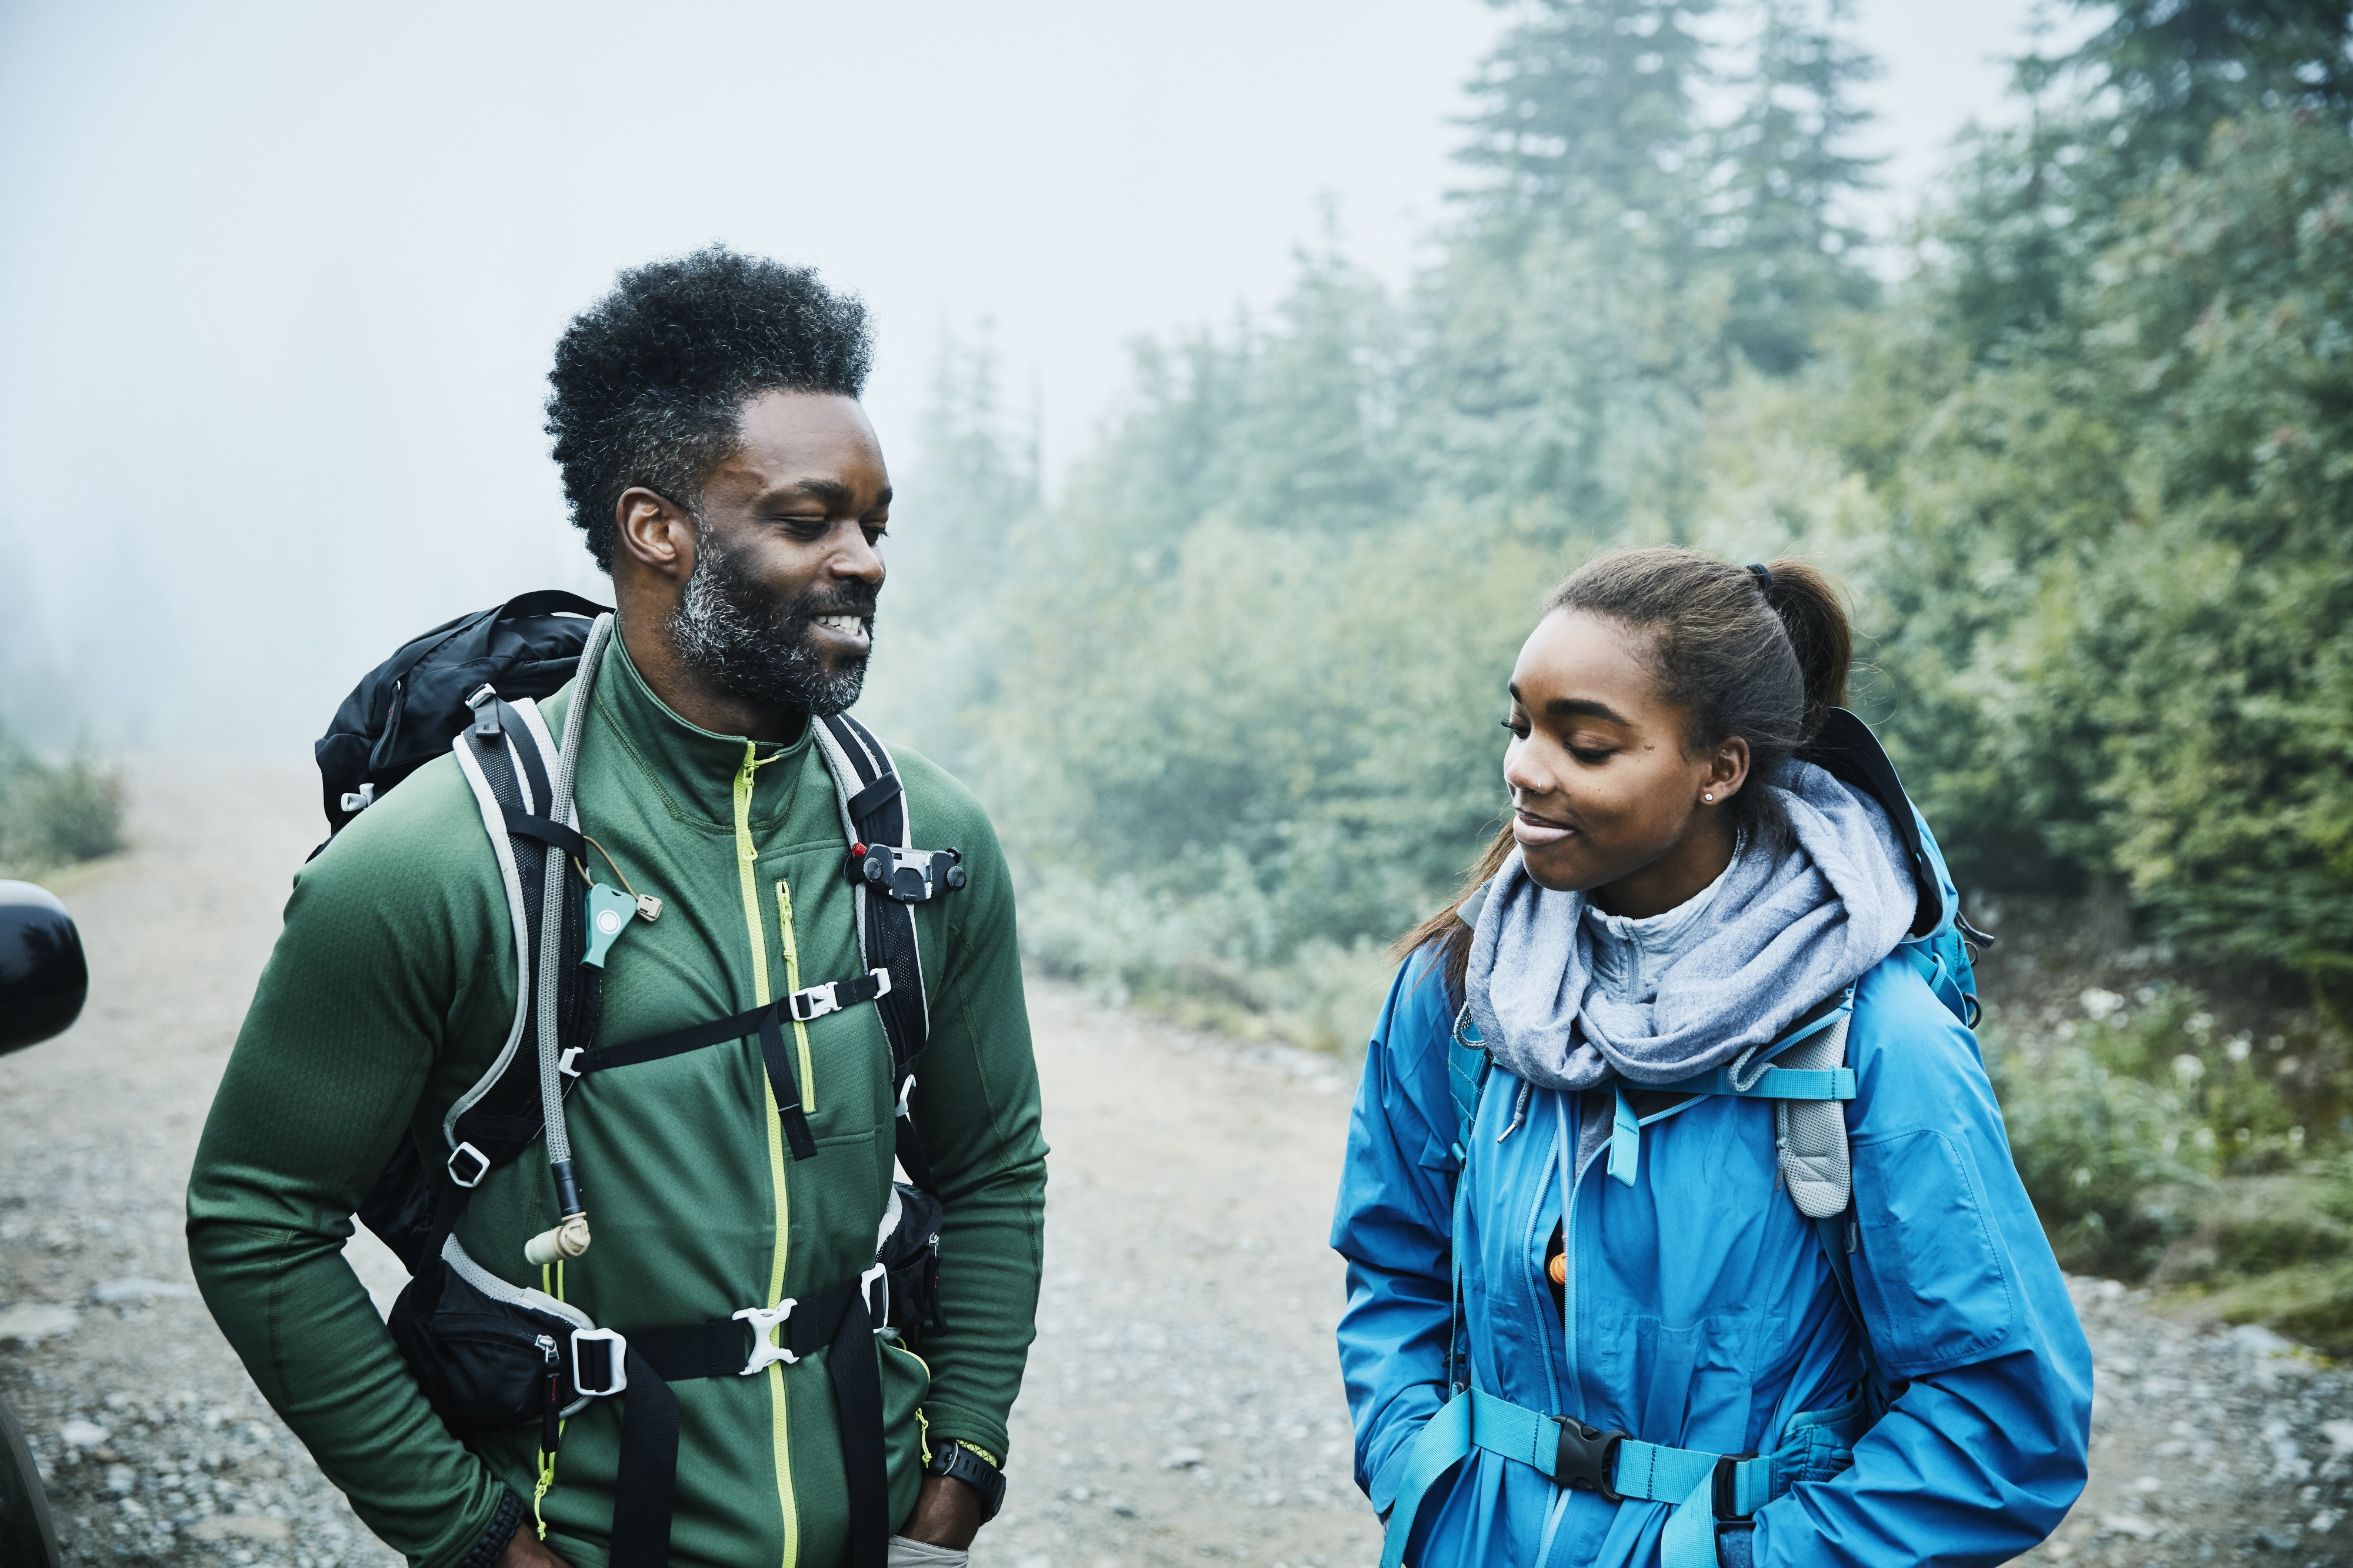 A smiling father and daughter stand and talk next to each other while preparing for early morning hike.